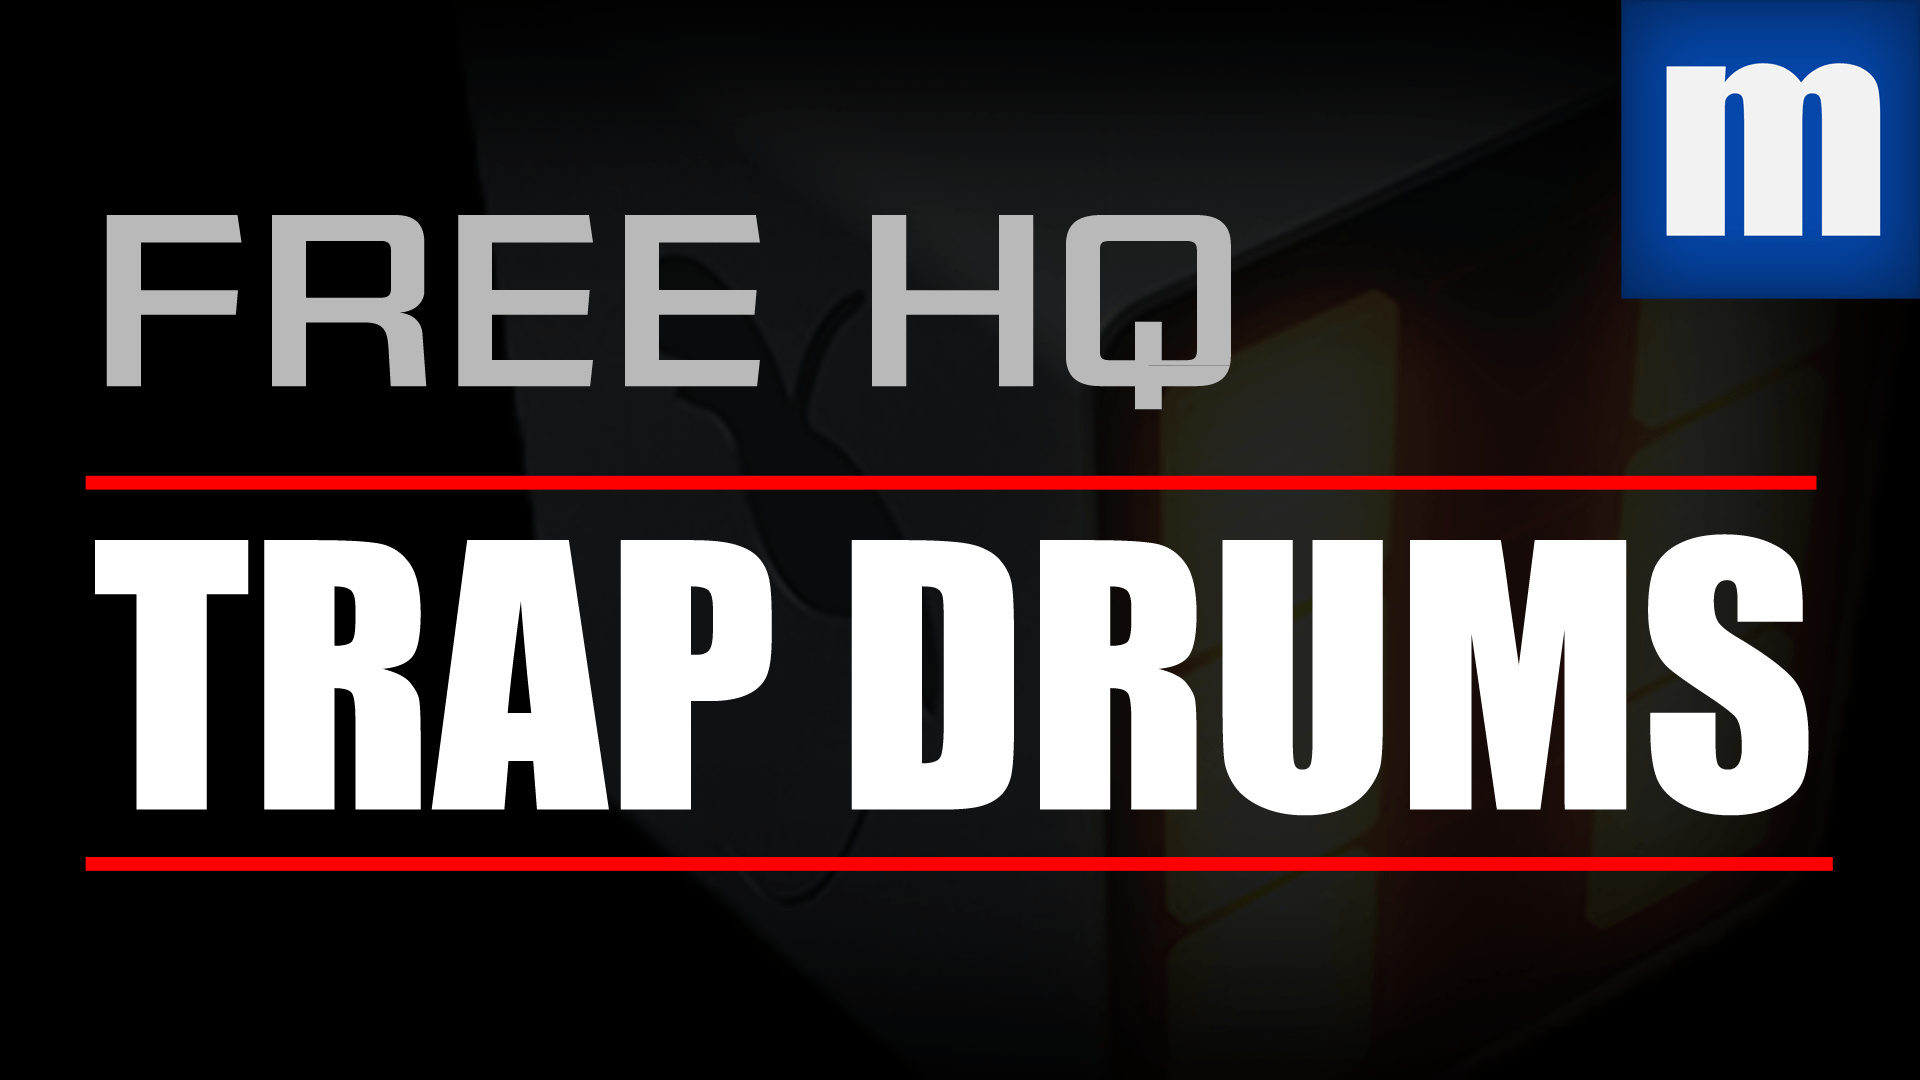 Free Trap Drums